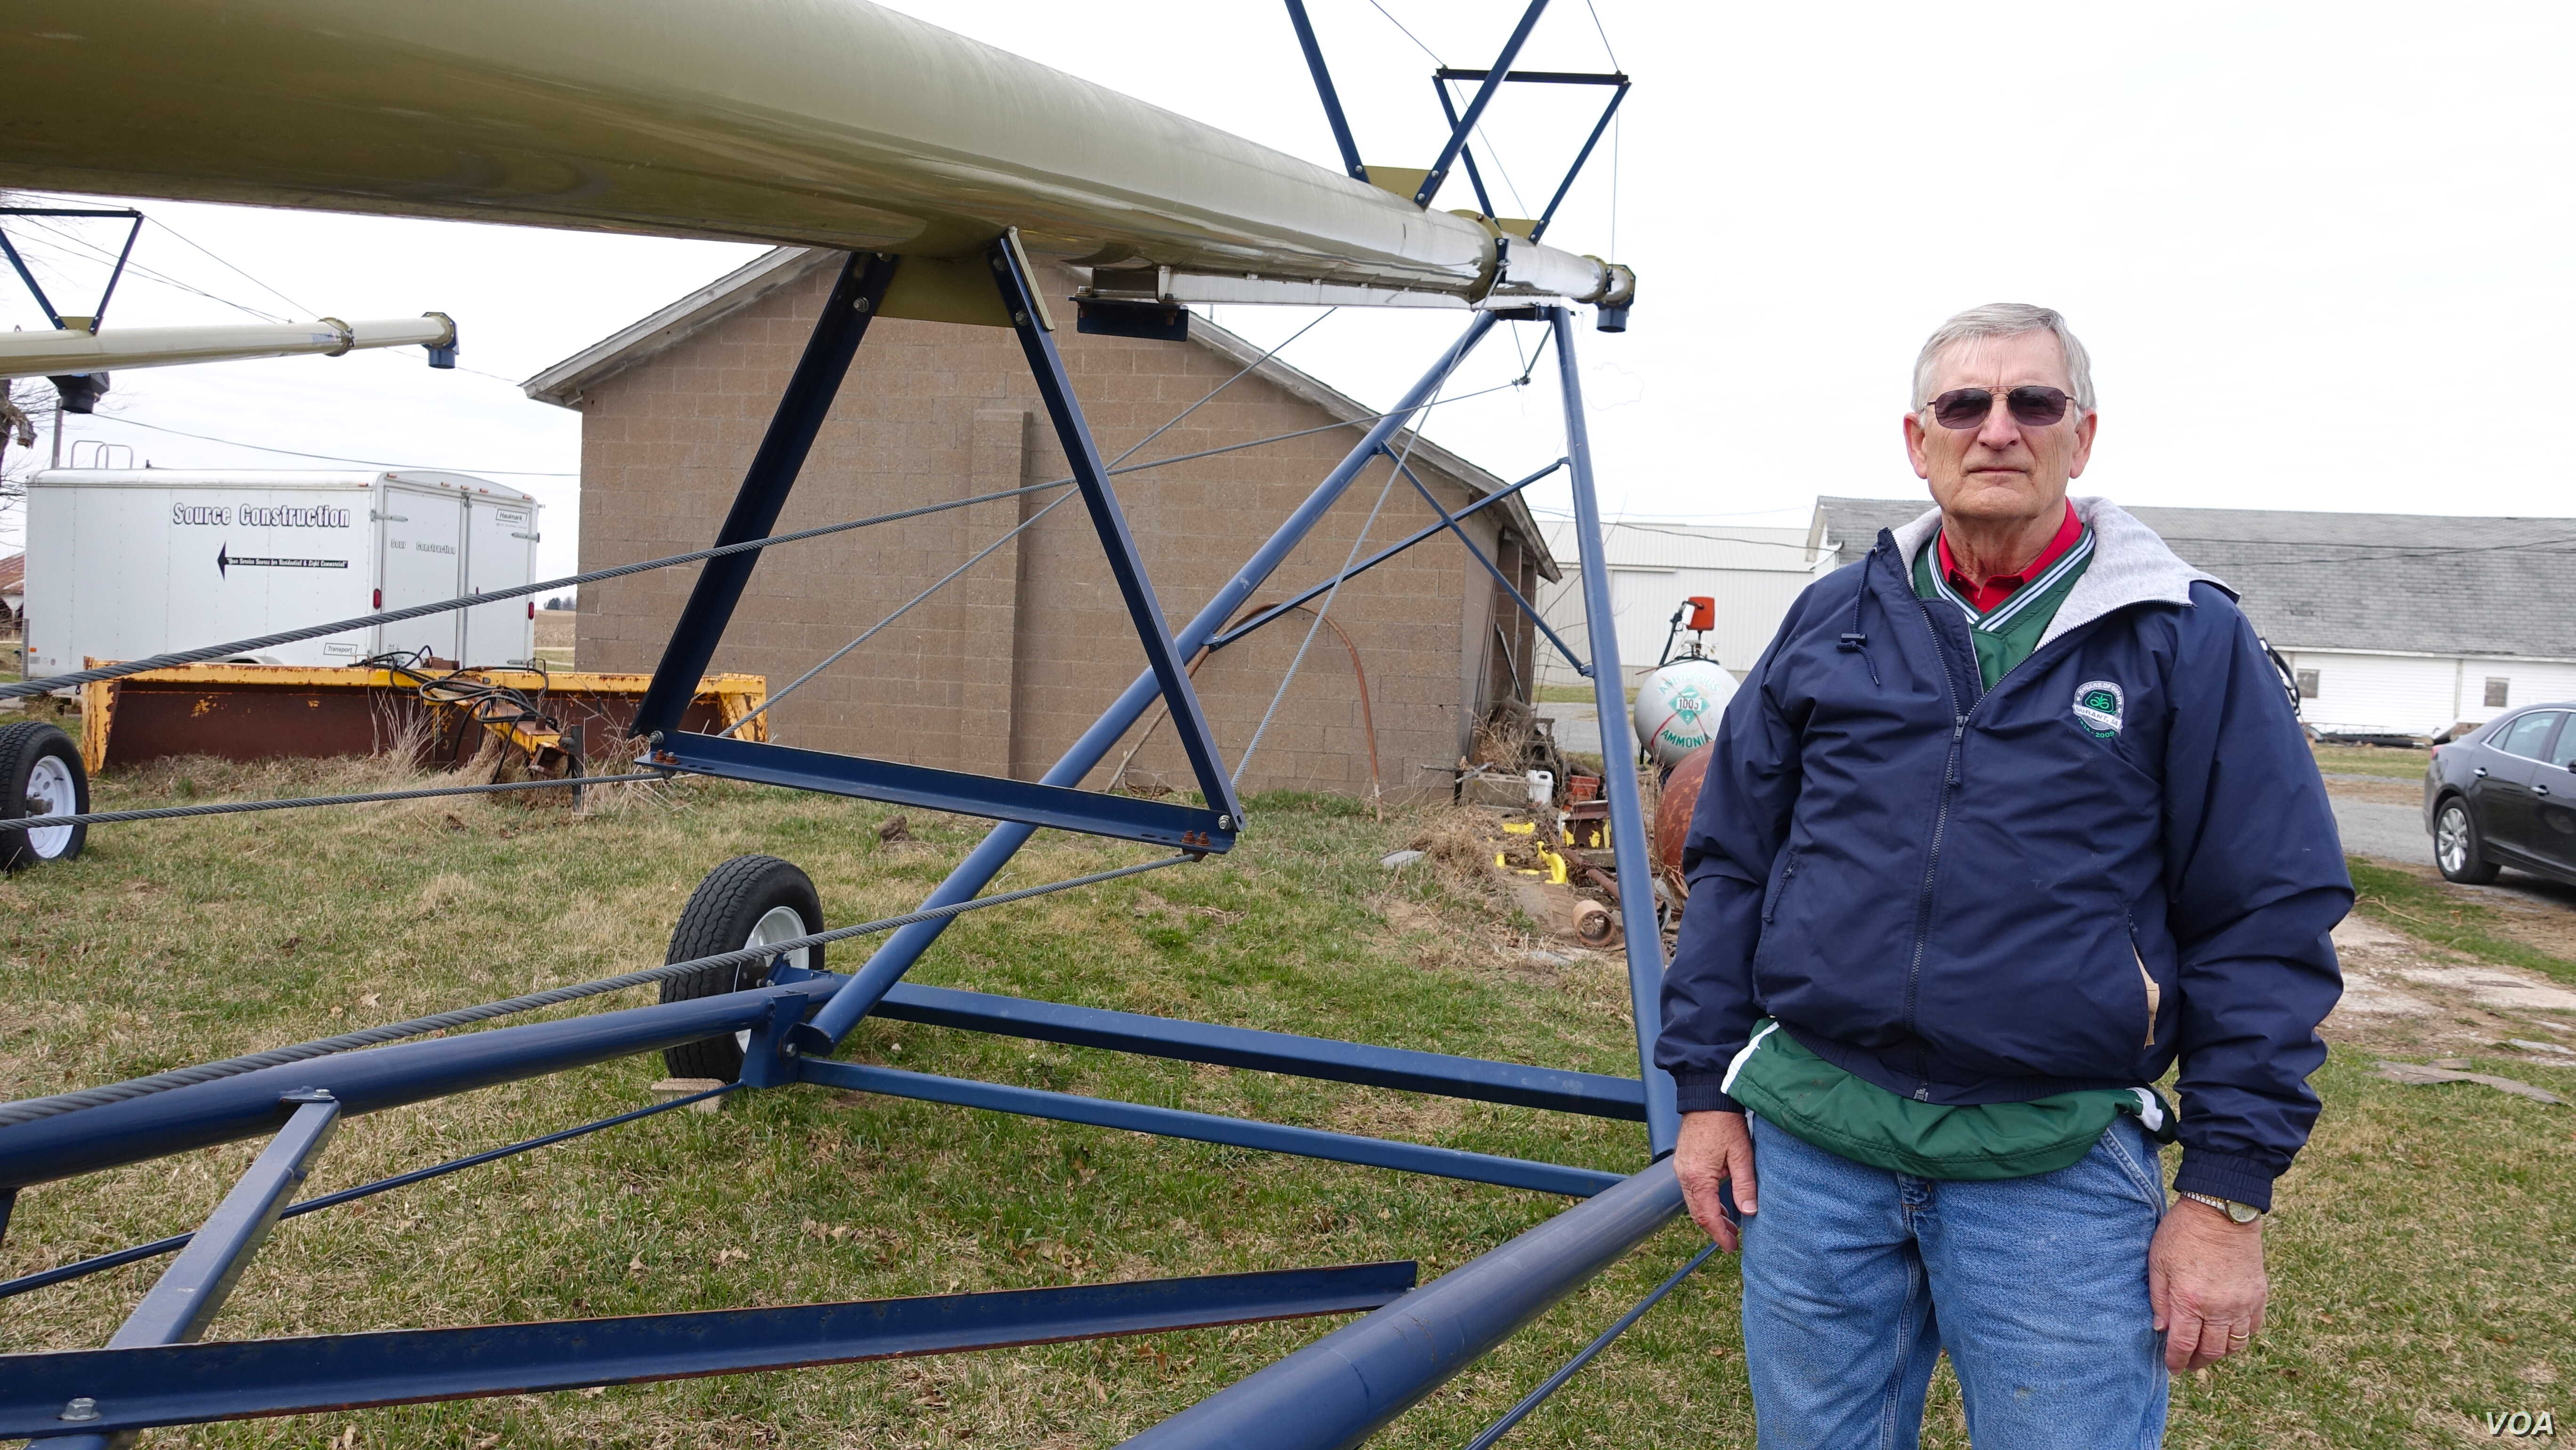 """Ron Gruenhagen, a farmer from Muscatine, Iowa, says U.S. farmers are very dependent on foreign markets. """"If we didn't have them we would be flooded with grain and soybeans and maybe we wouldn't know what to do with it,"""" he said."""